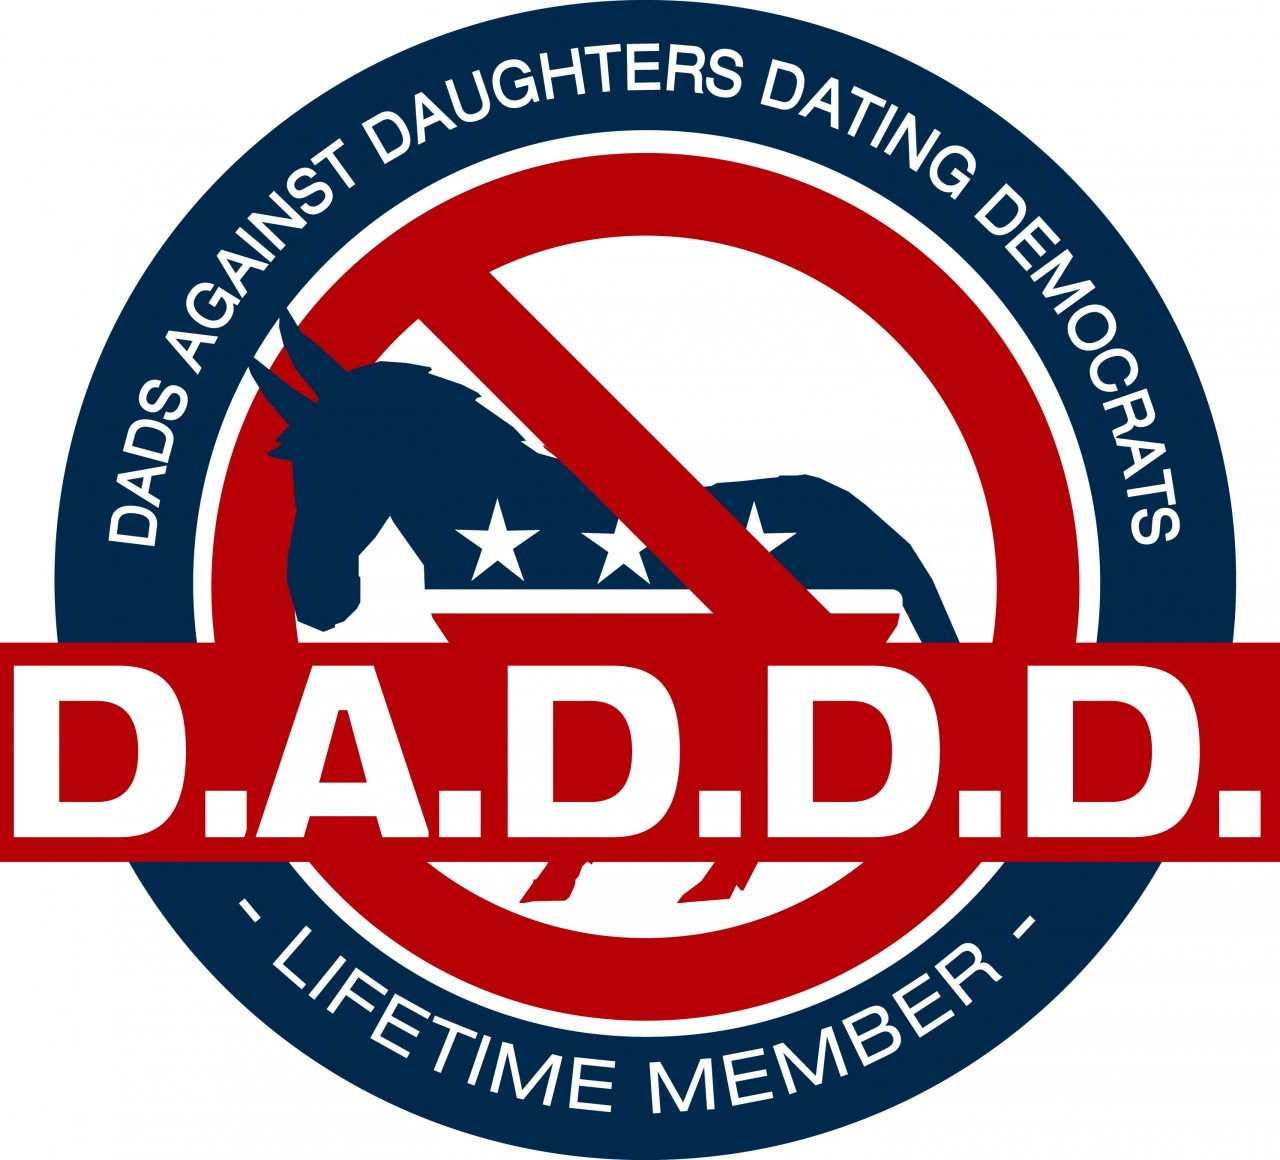 daughters dating